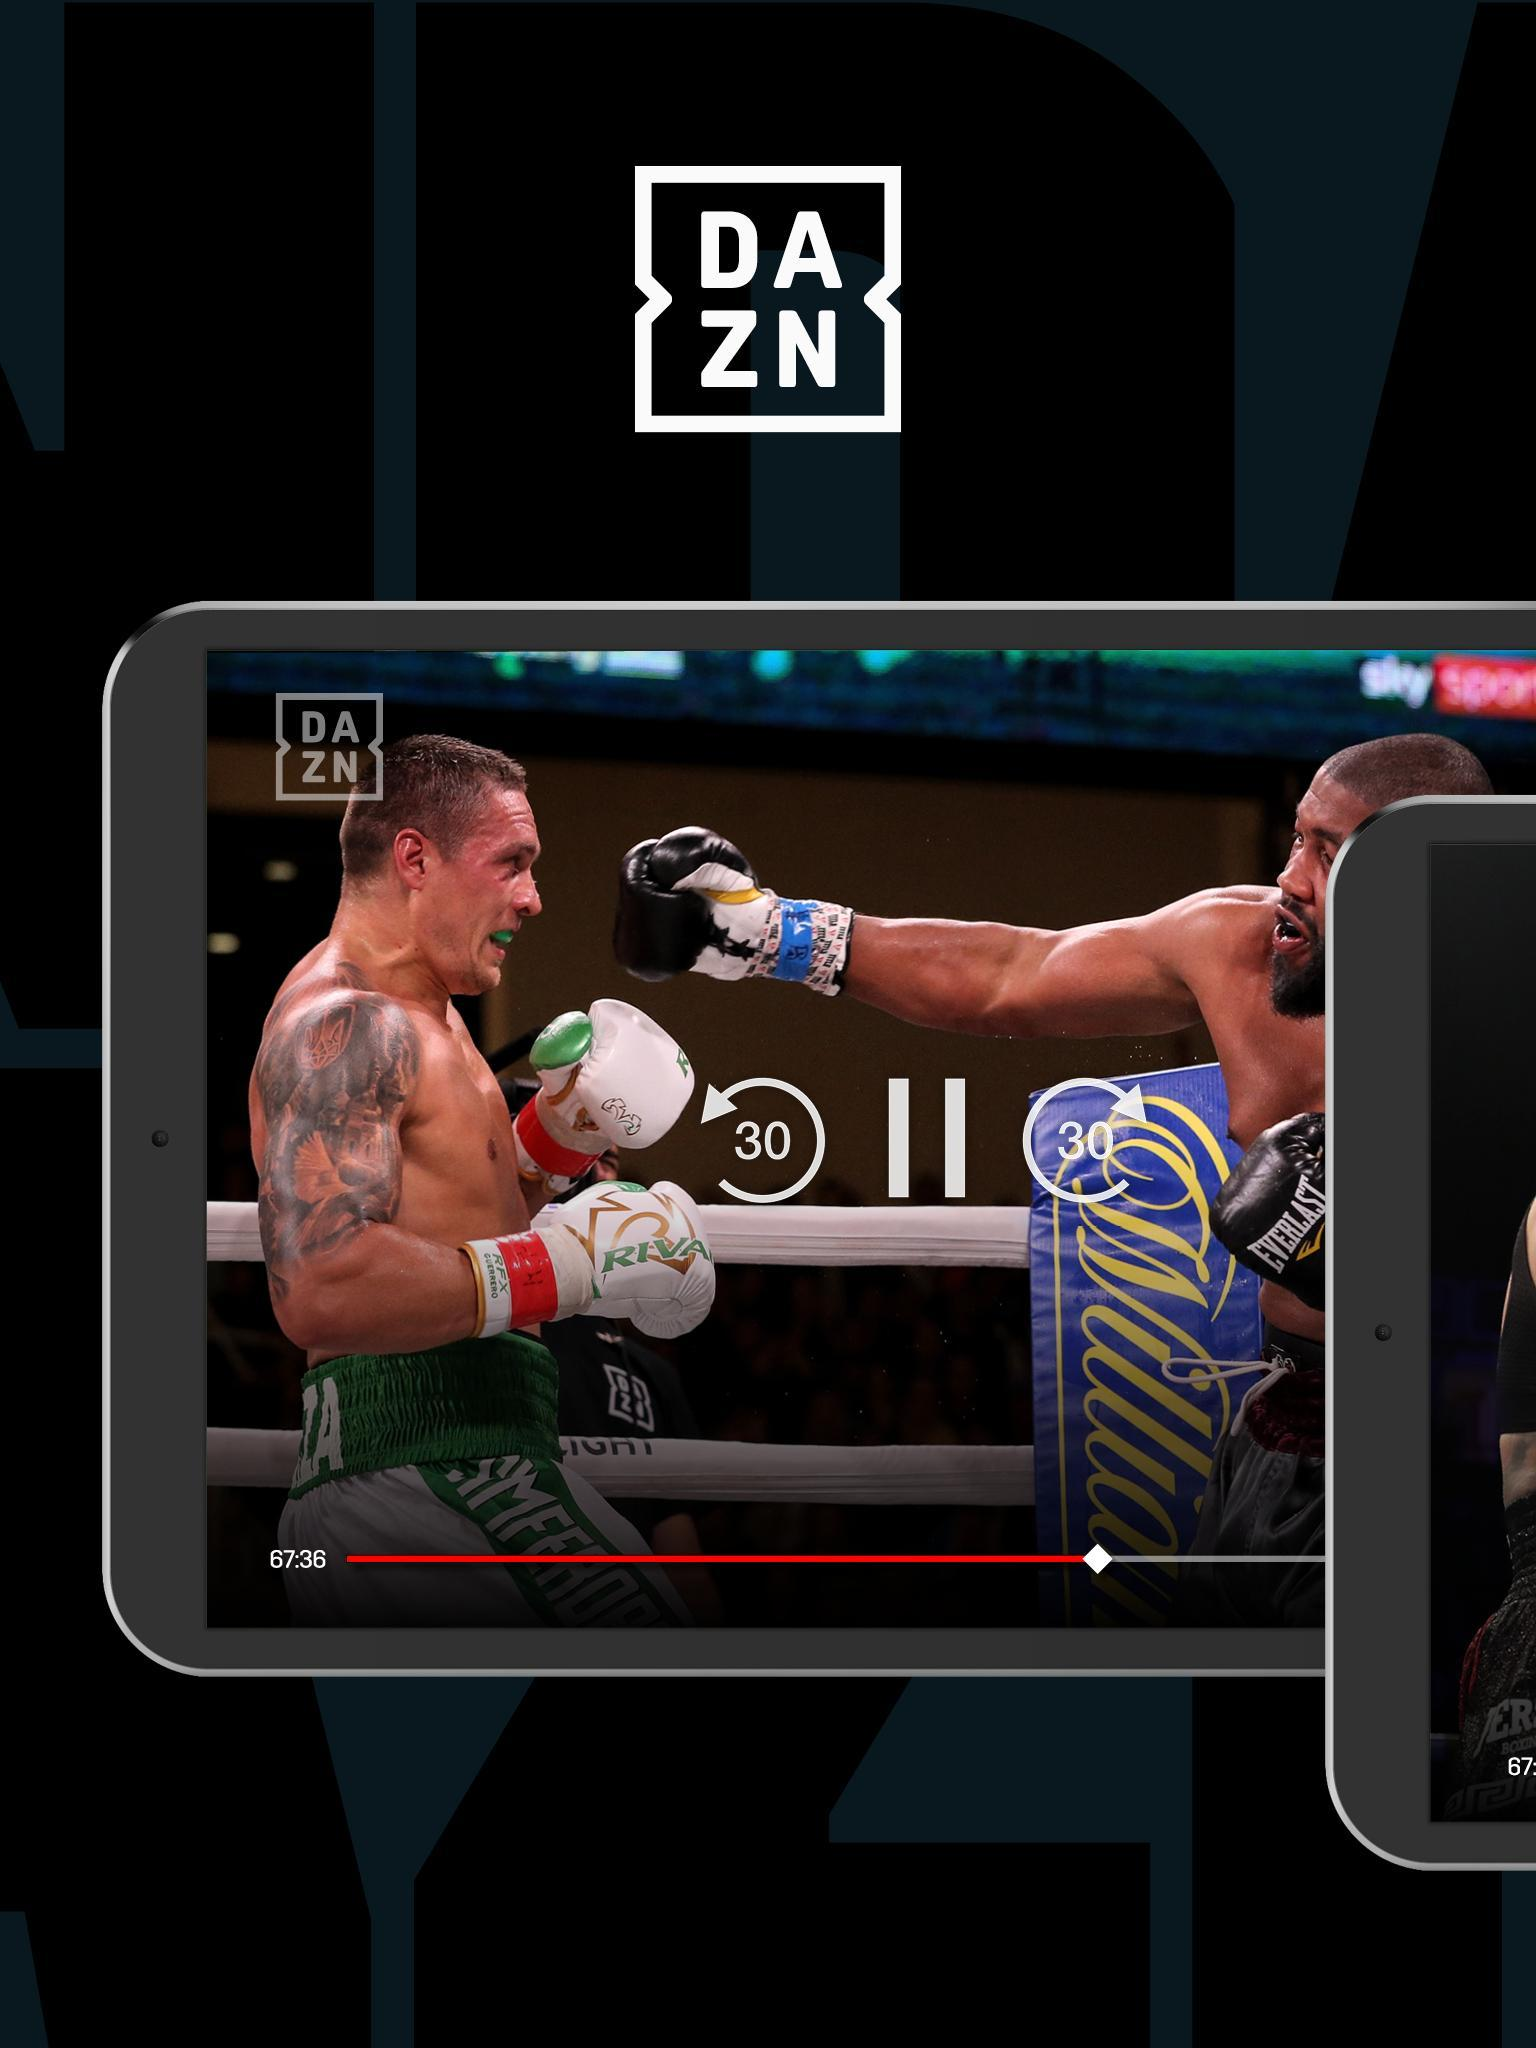 DAZN Live Fight Sports: Boxing, MMA & More 1.69.13 Screenshot 9